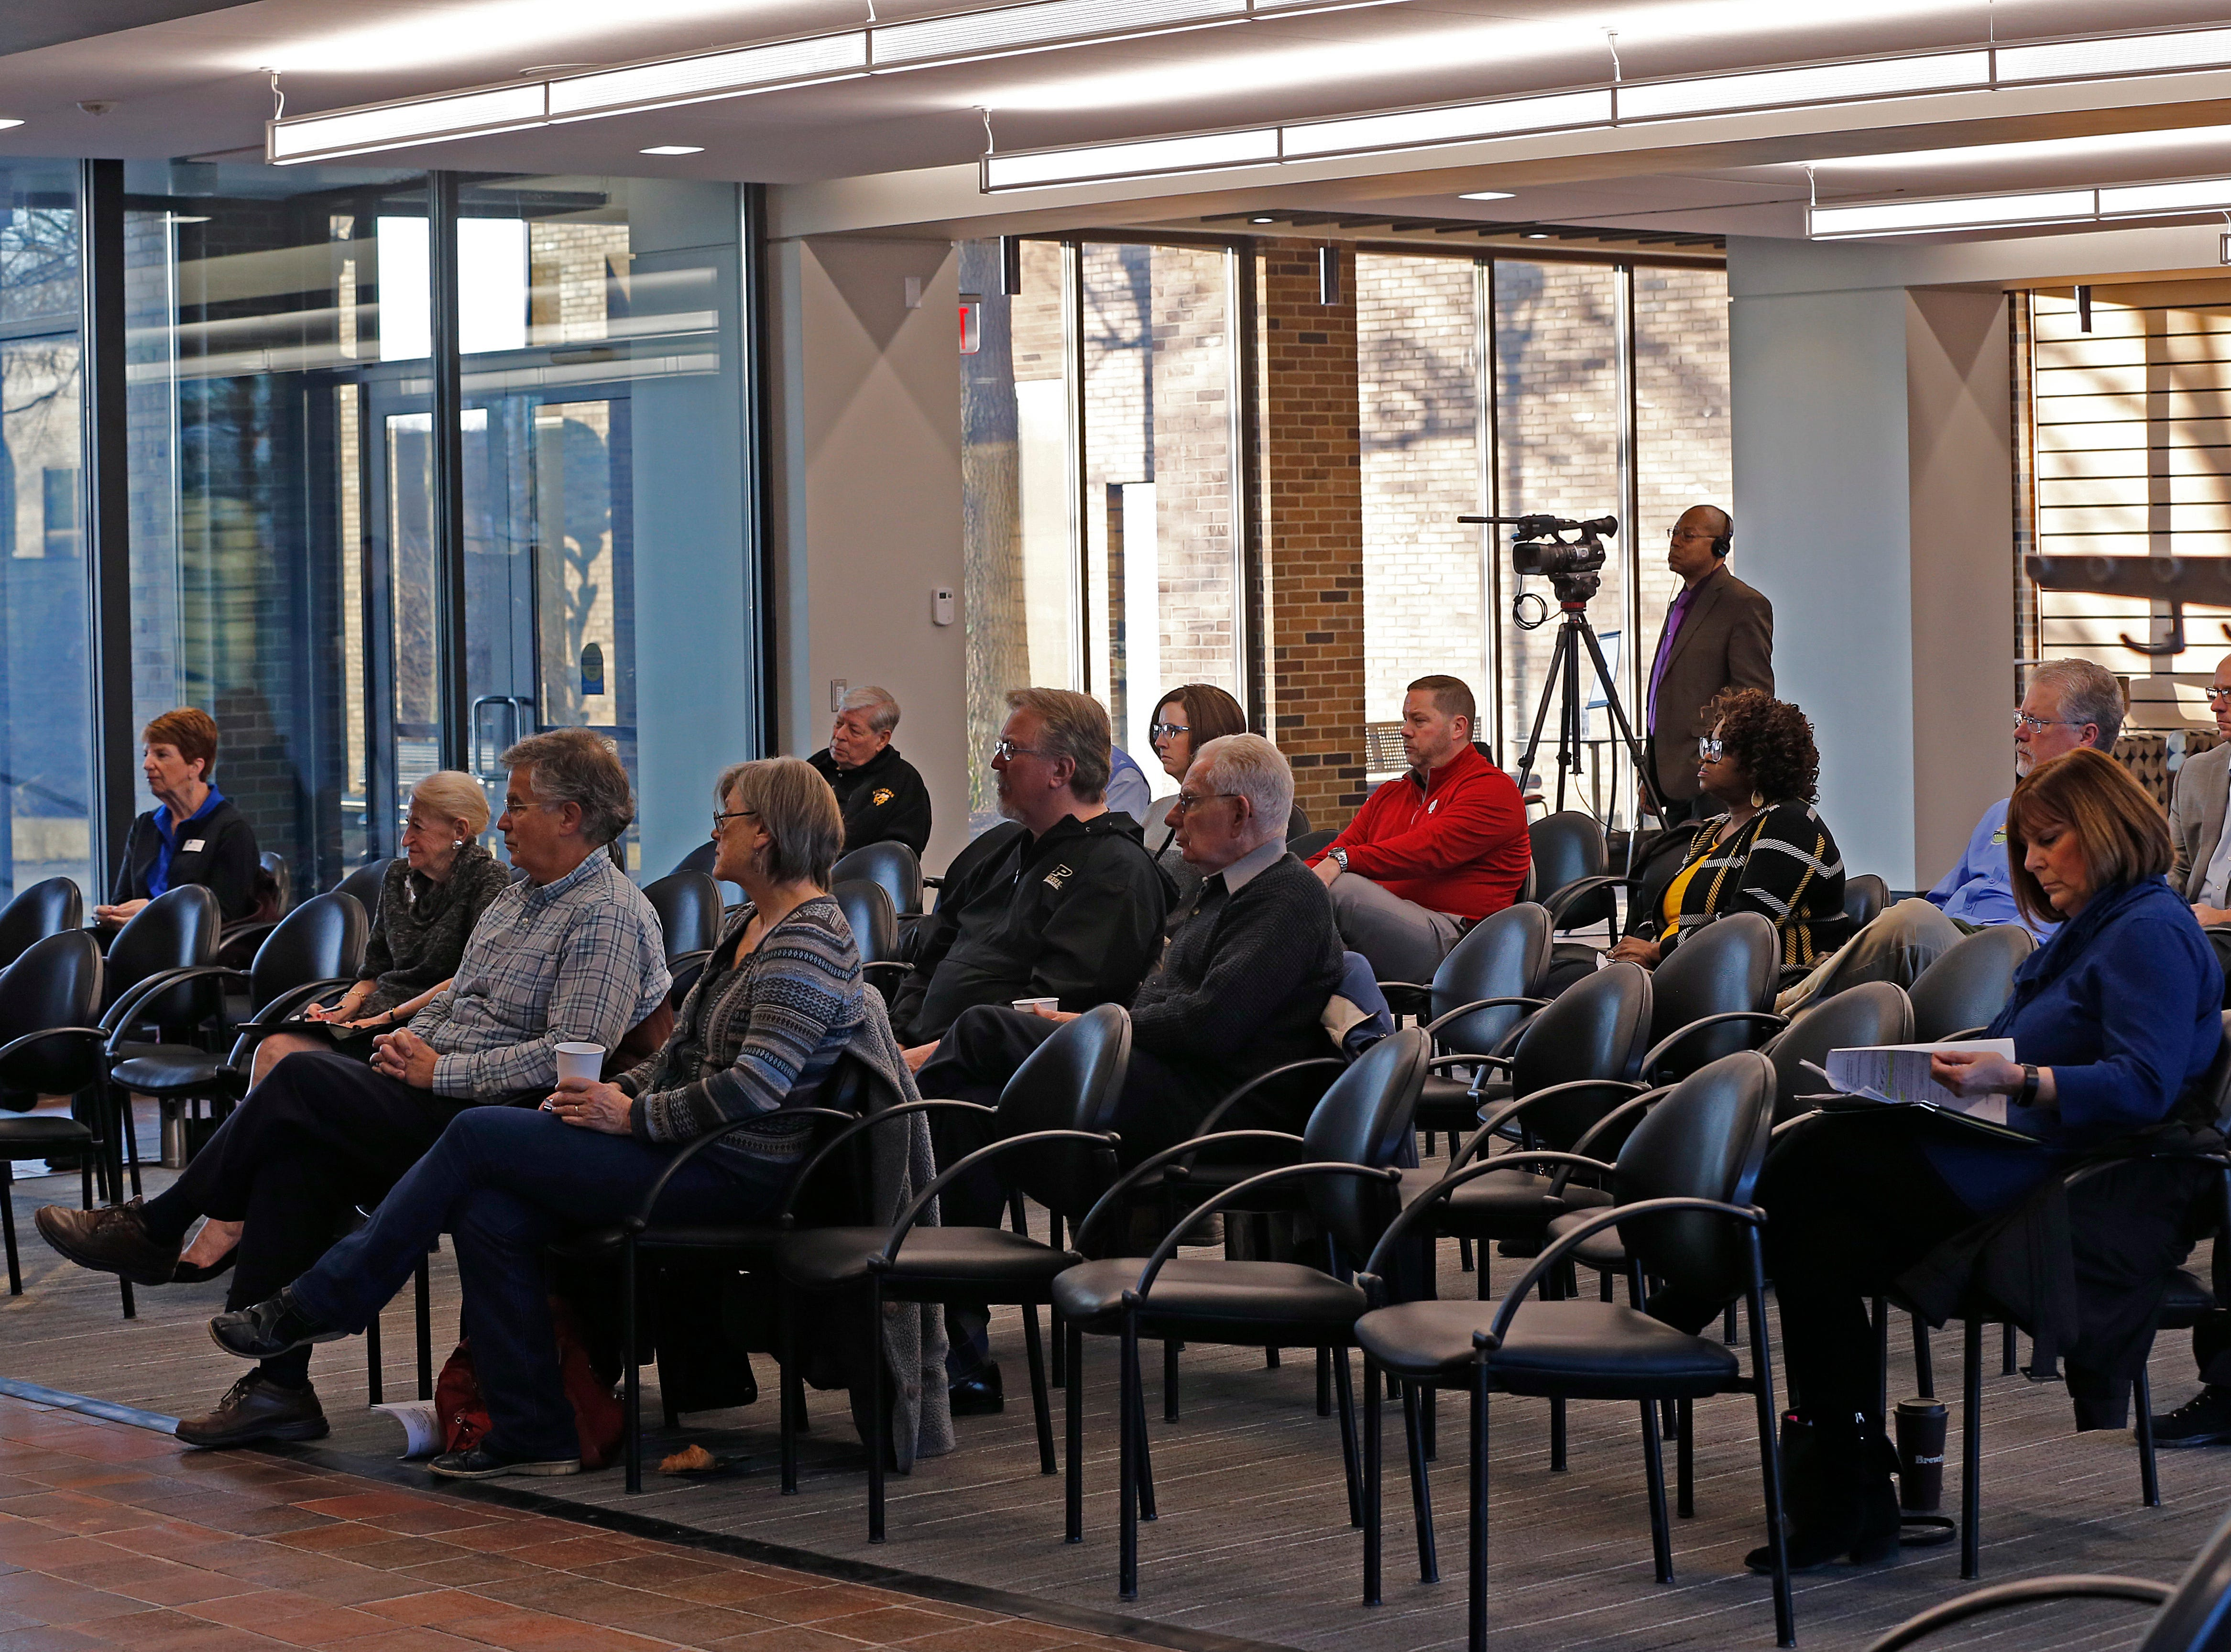 About 20 people turned out Friday morning for IU East's Legislative Forum in Whitewater Hall on the school's campus.